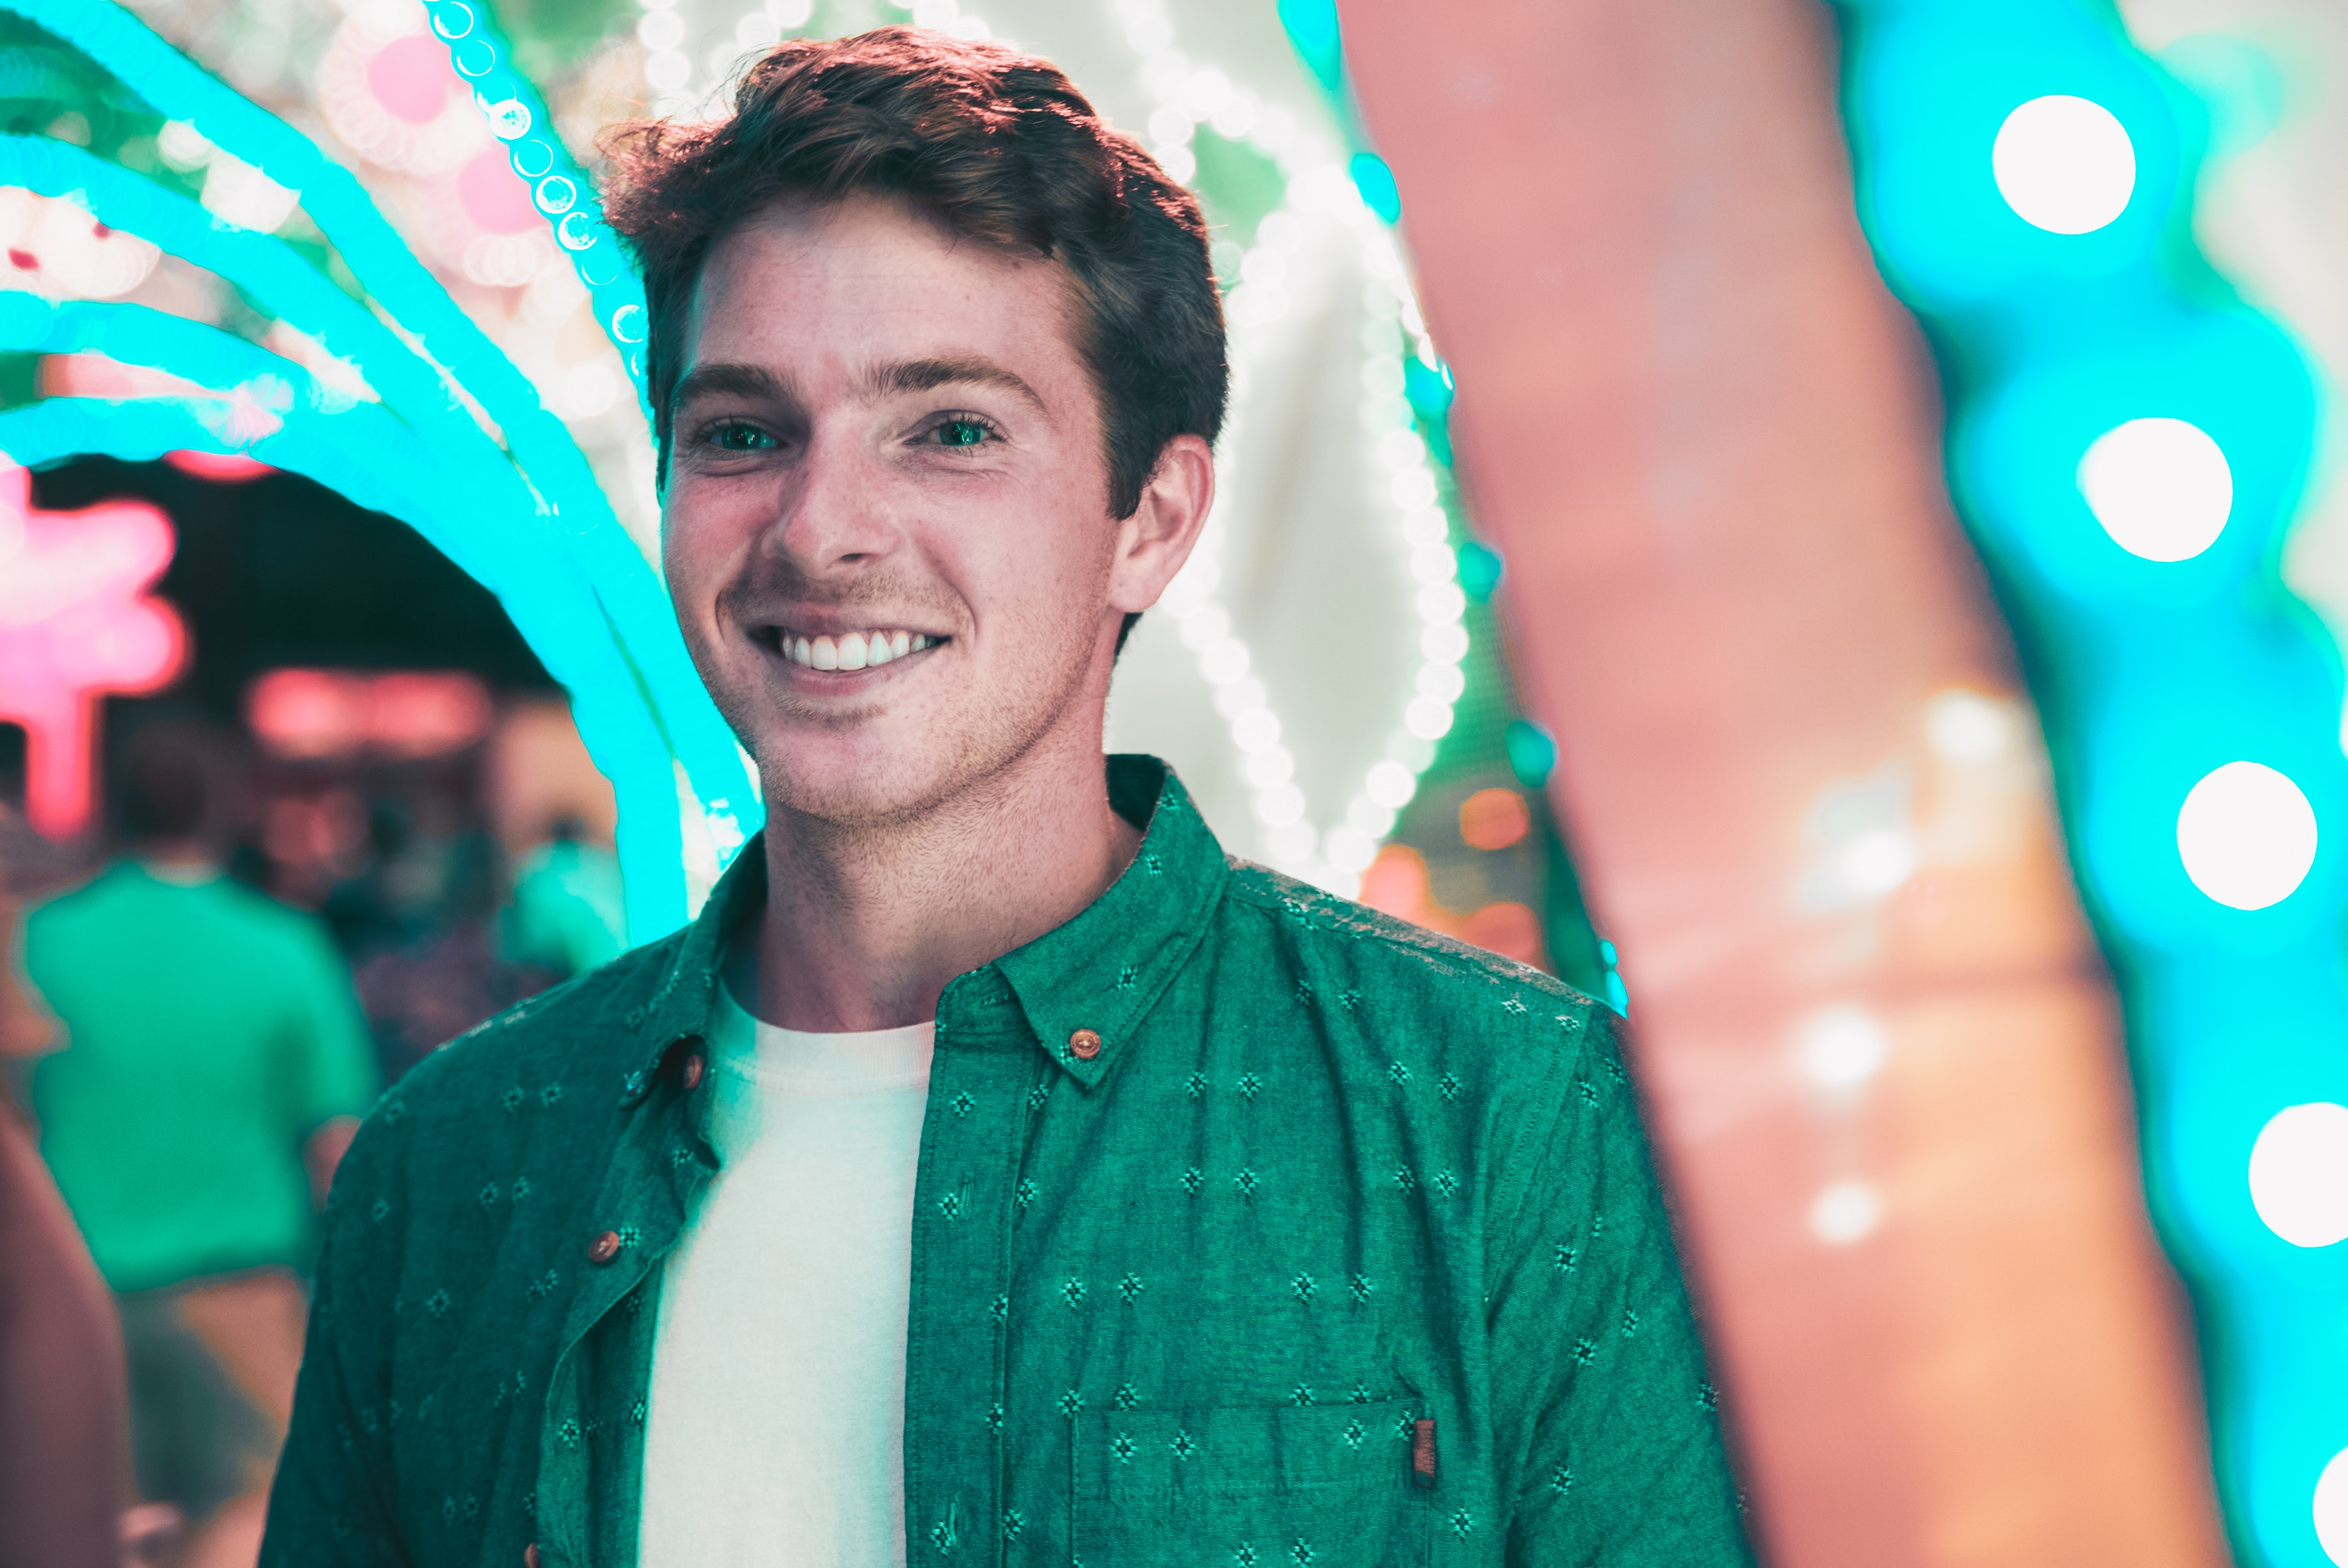 A portrait of a smiling young man in front of a light display in Philadelphia